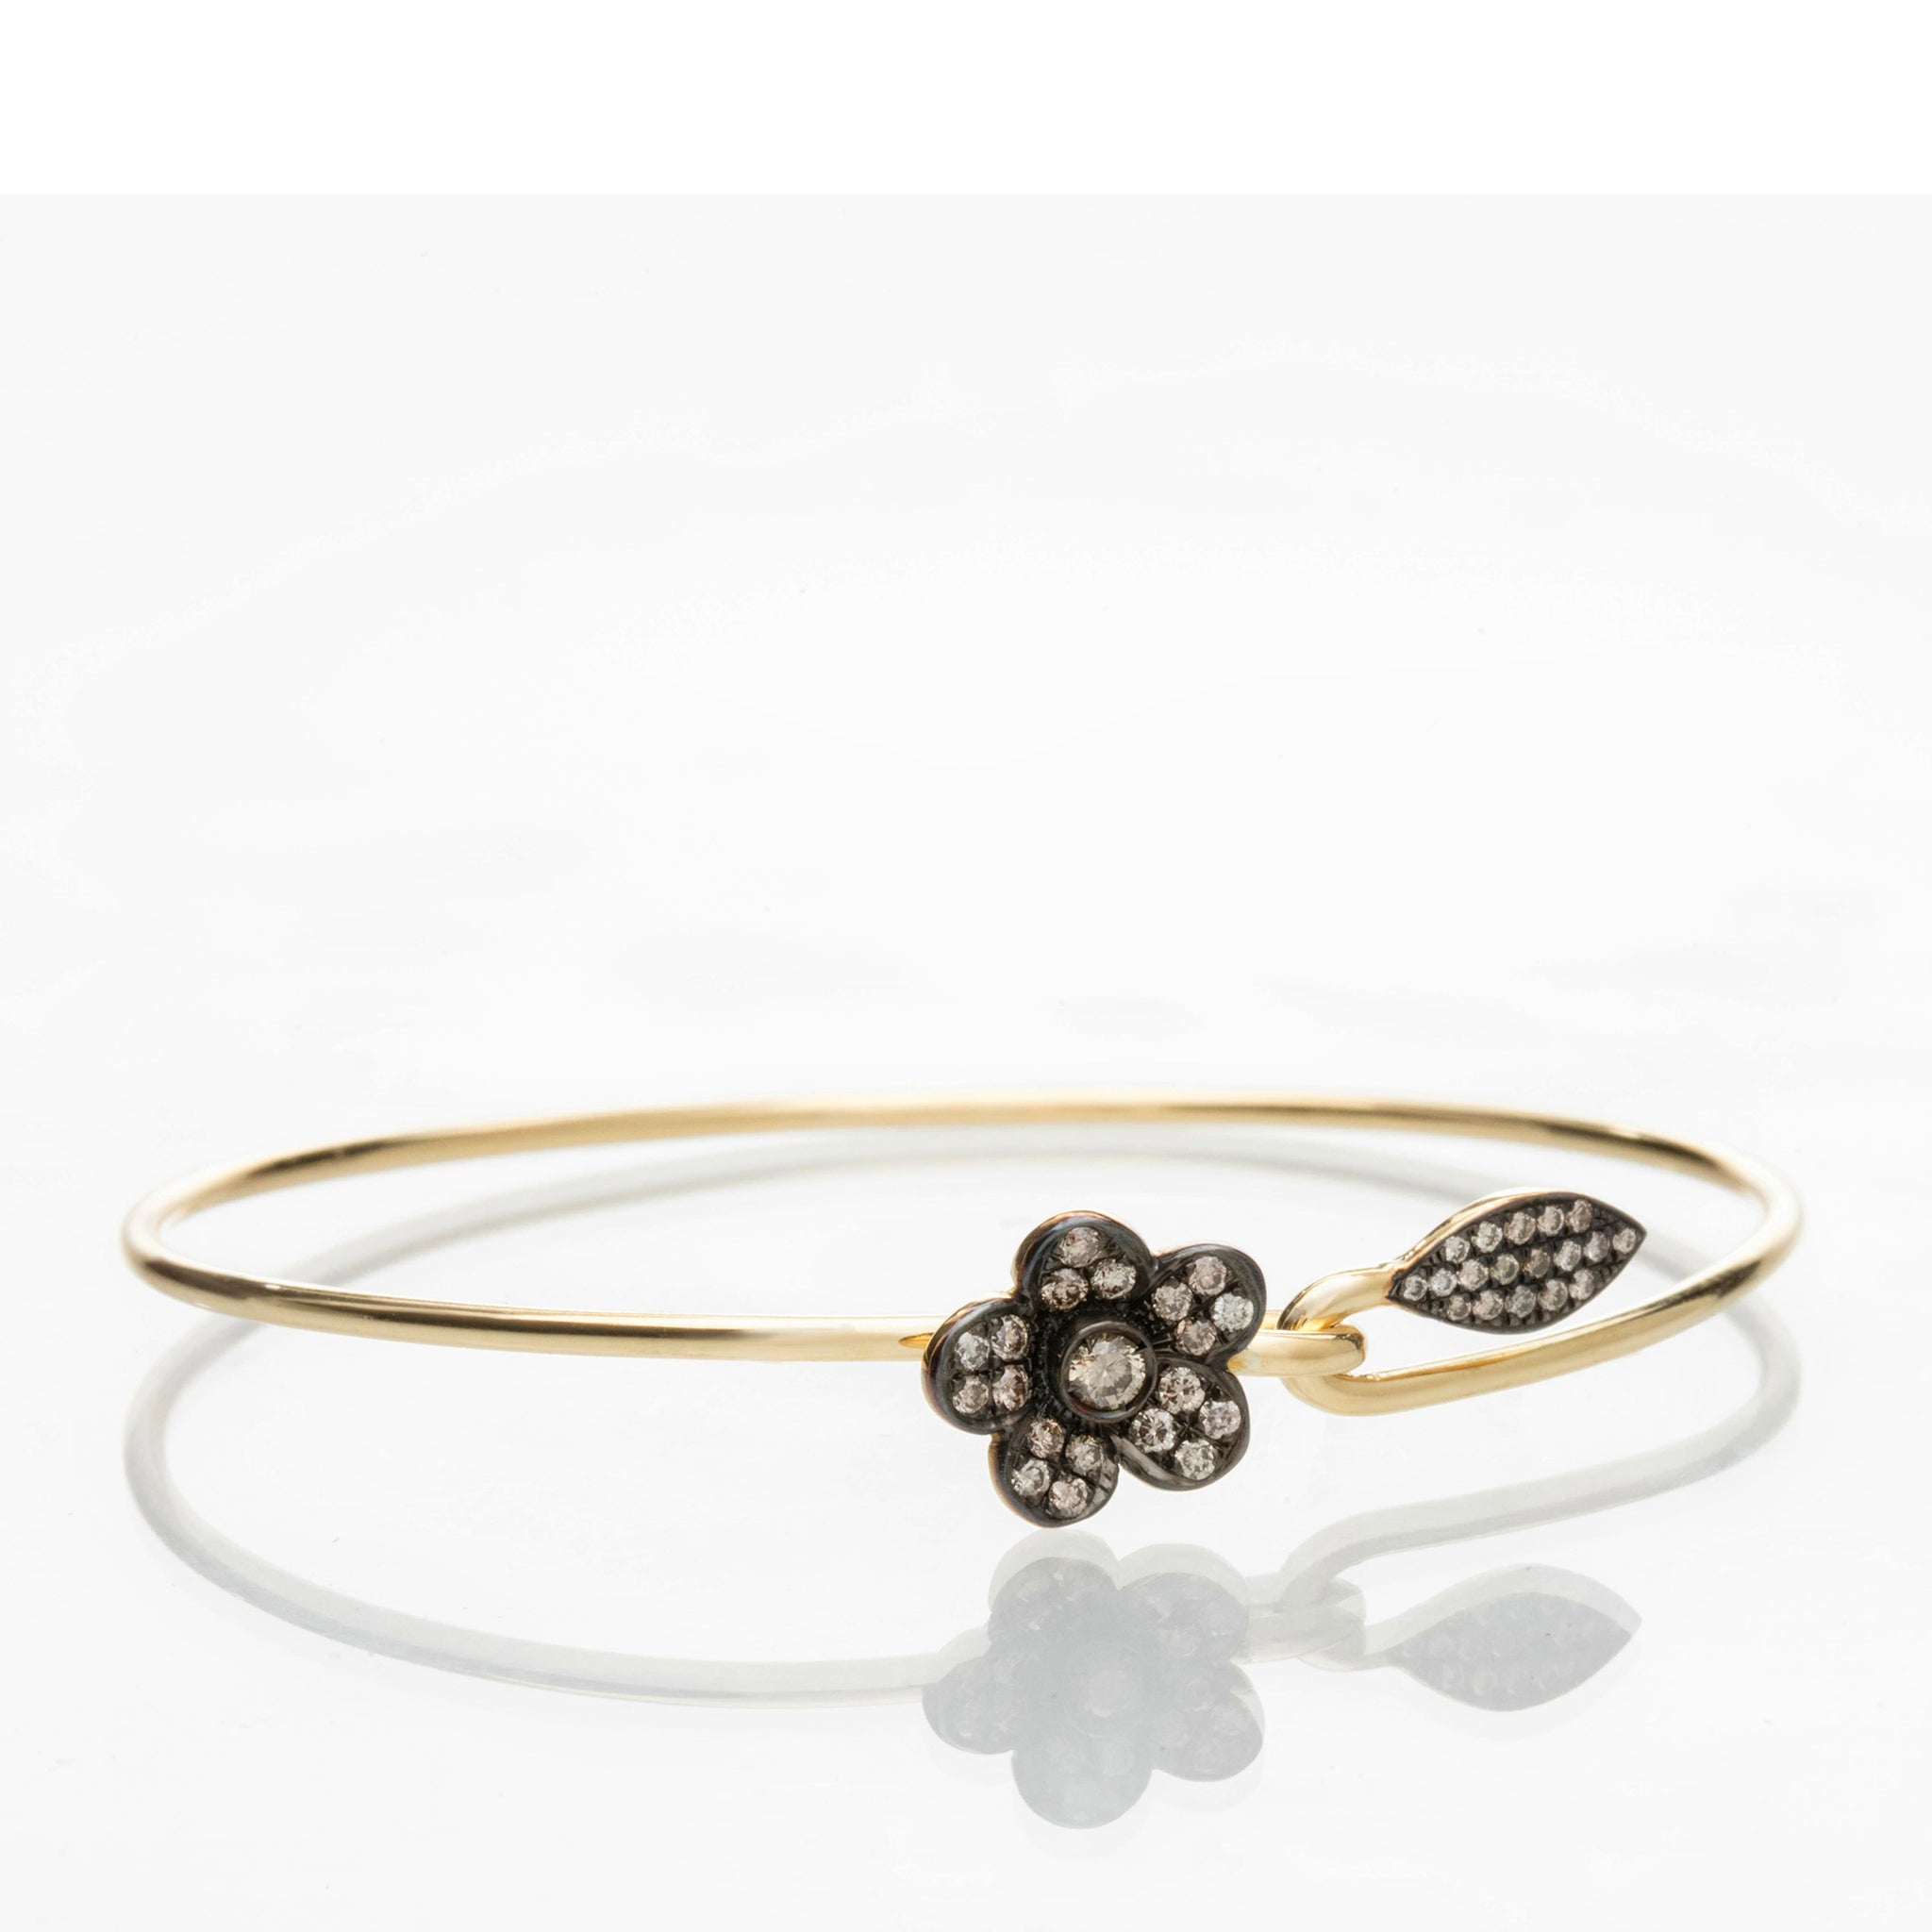 FLOWER AND LEAF BRACELET